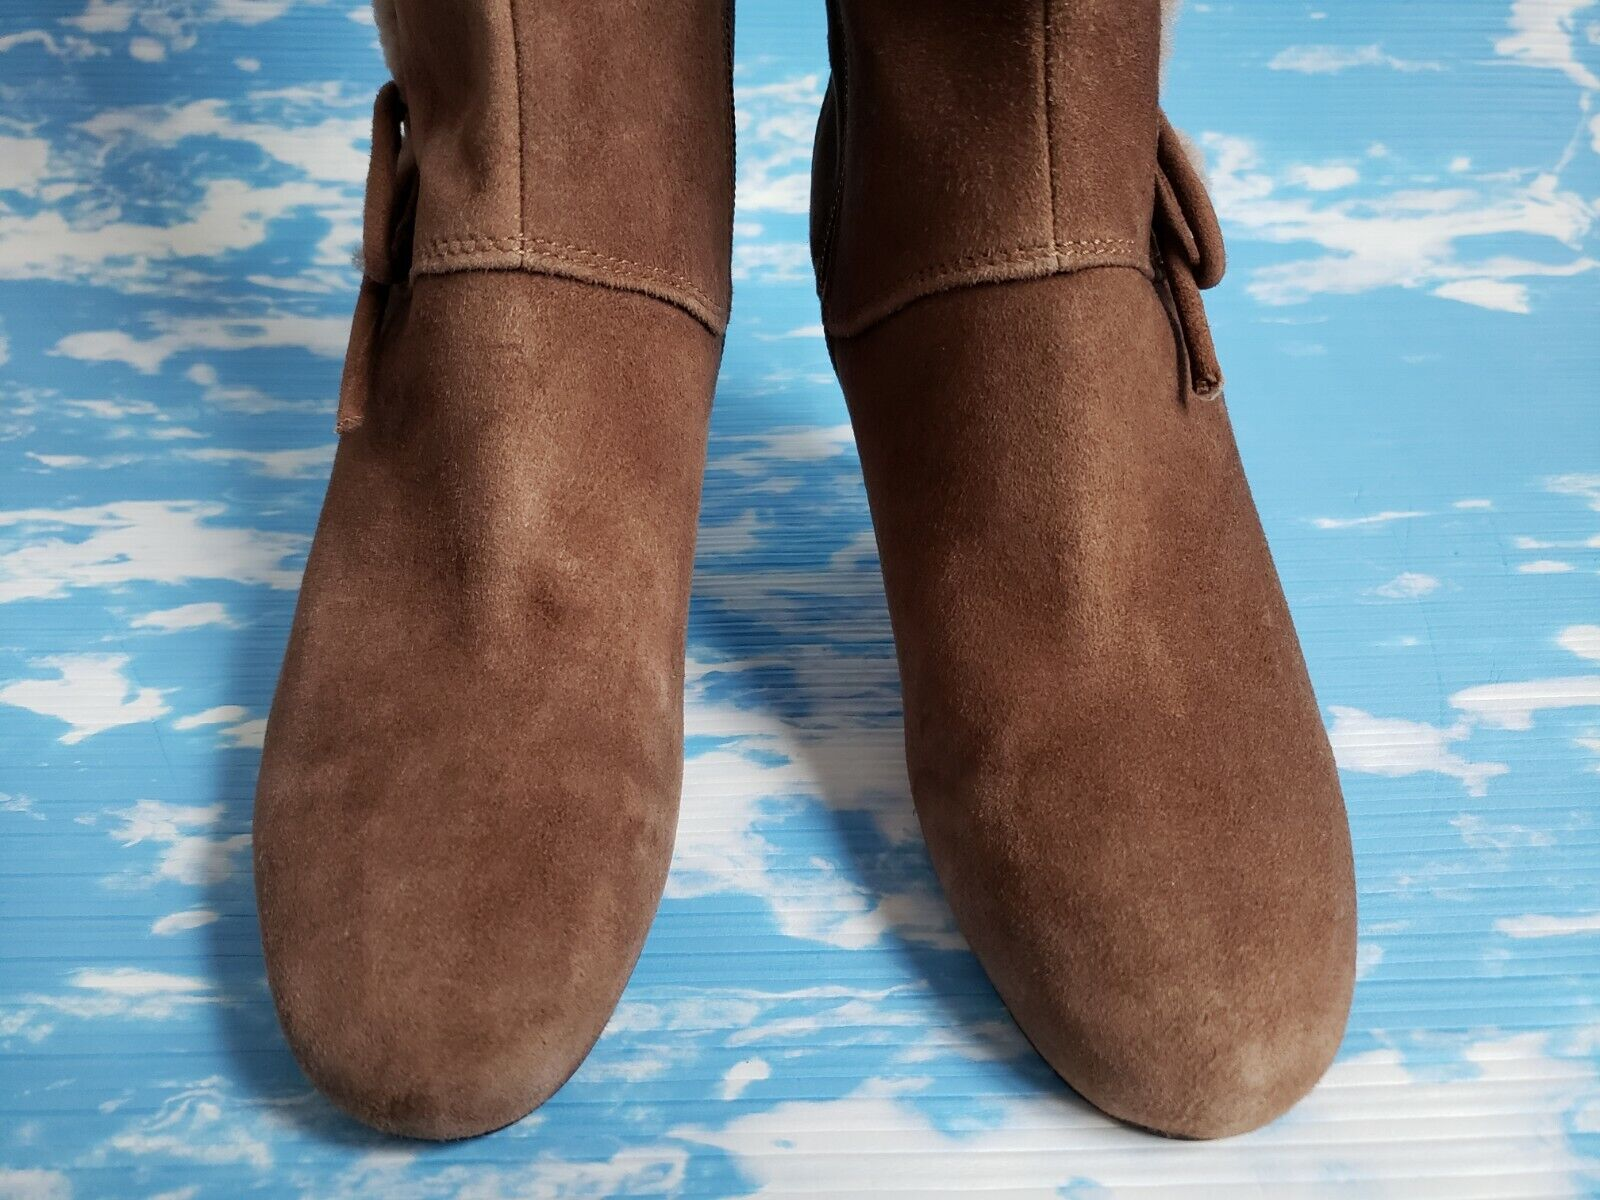 NWOB NWOB NWOB  225 CIRCA JOAN & DAVID BROWN SUEDE LEATHER FUR TRIM LACE UP ZIP BOOTS 7 M e25882